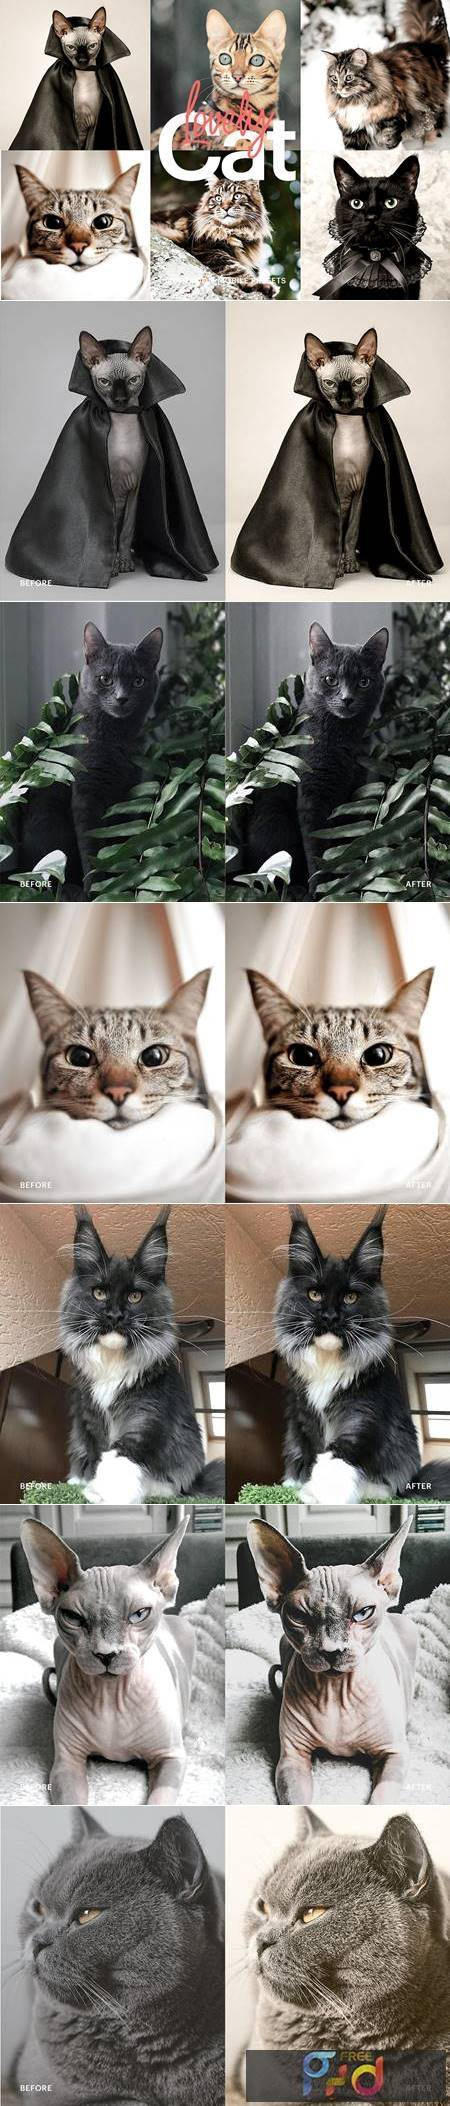 Lightroom Preset - Lovely Cat Theme 4973248 1